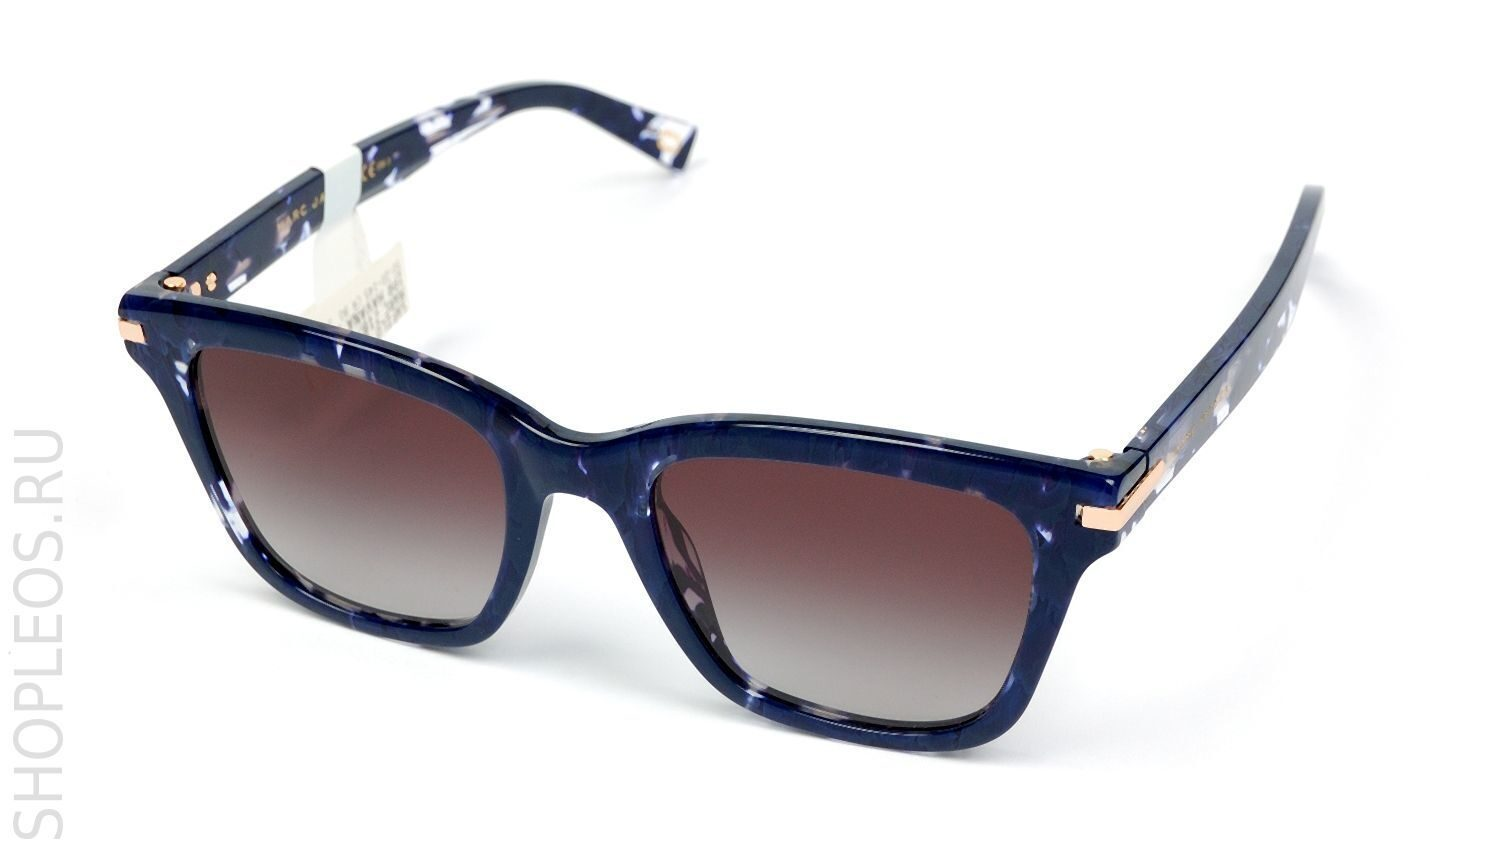 MARC JACOBS WOMAN MARC 218/S IPR